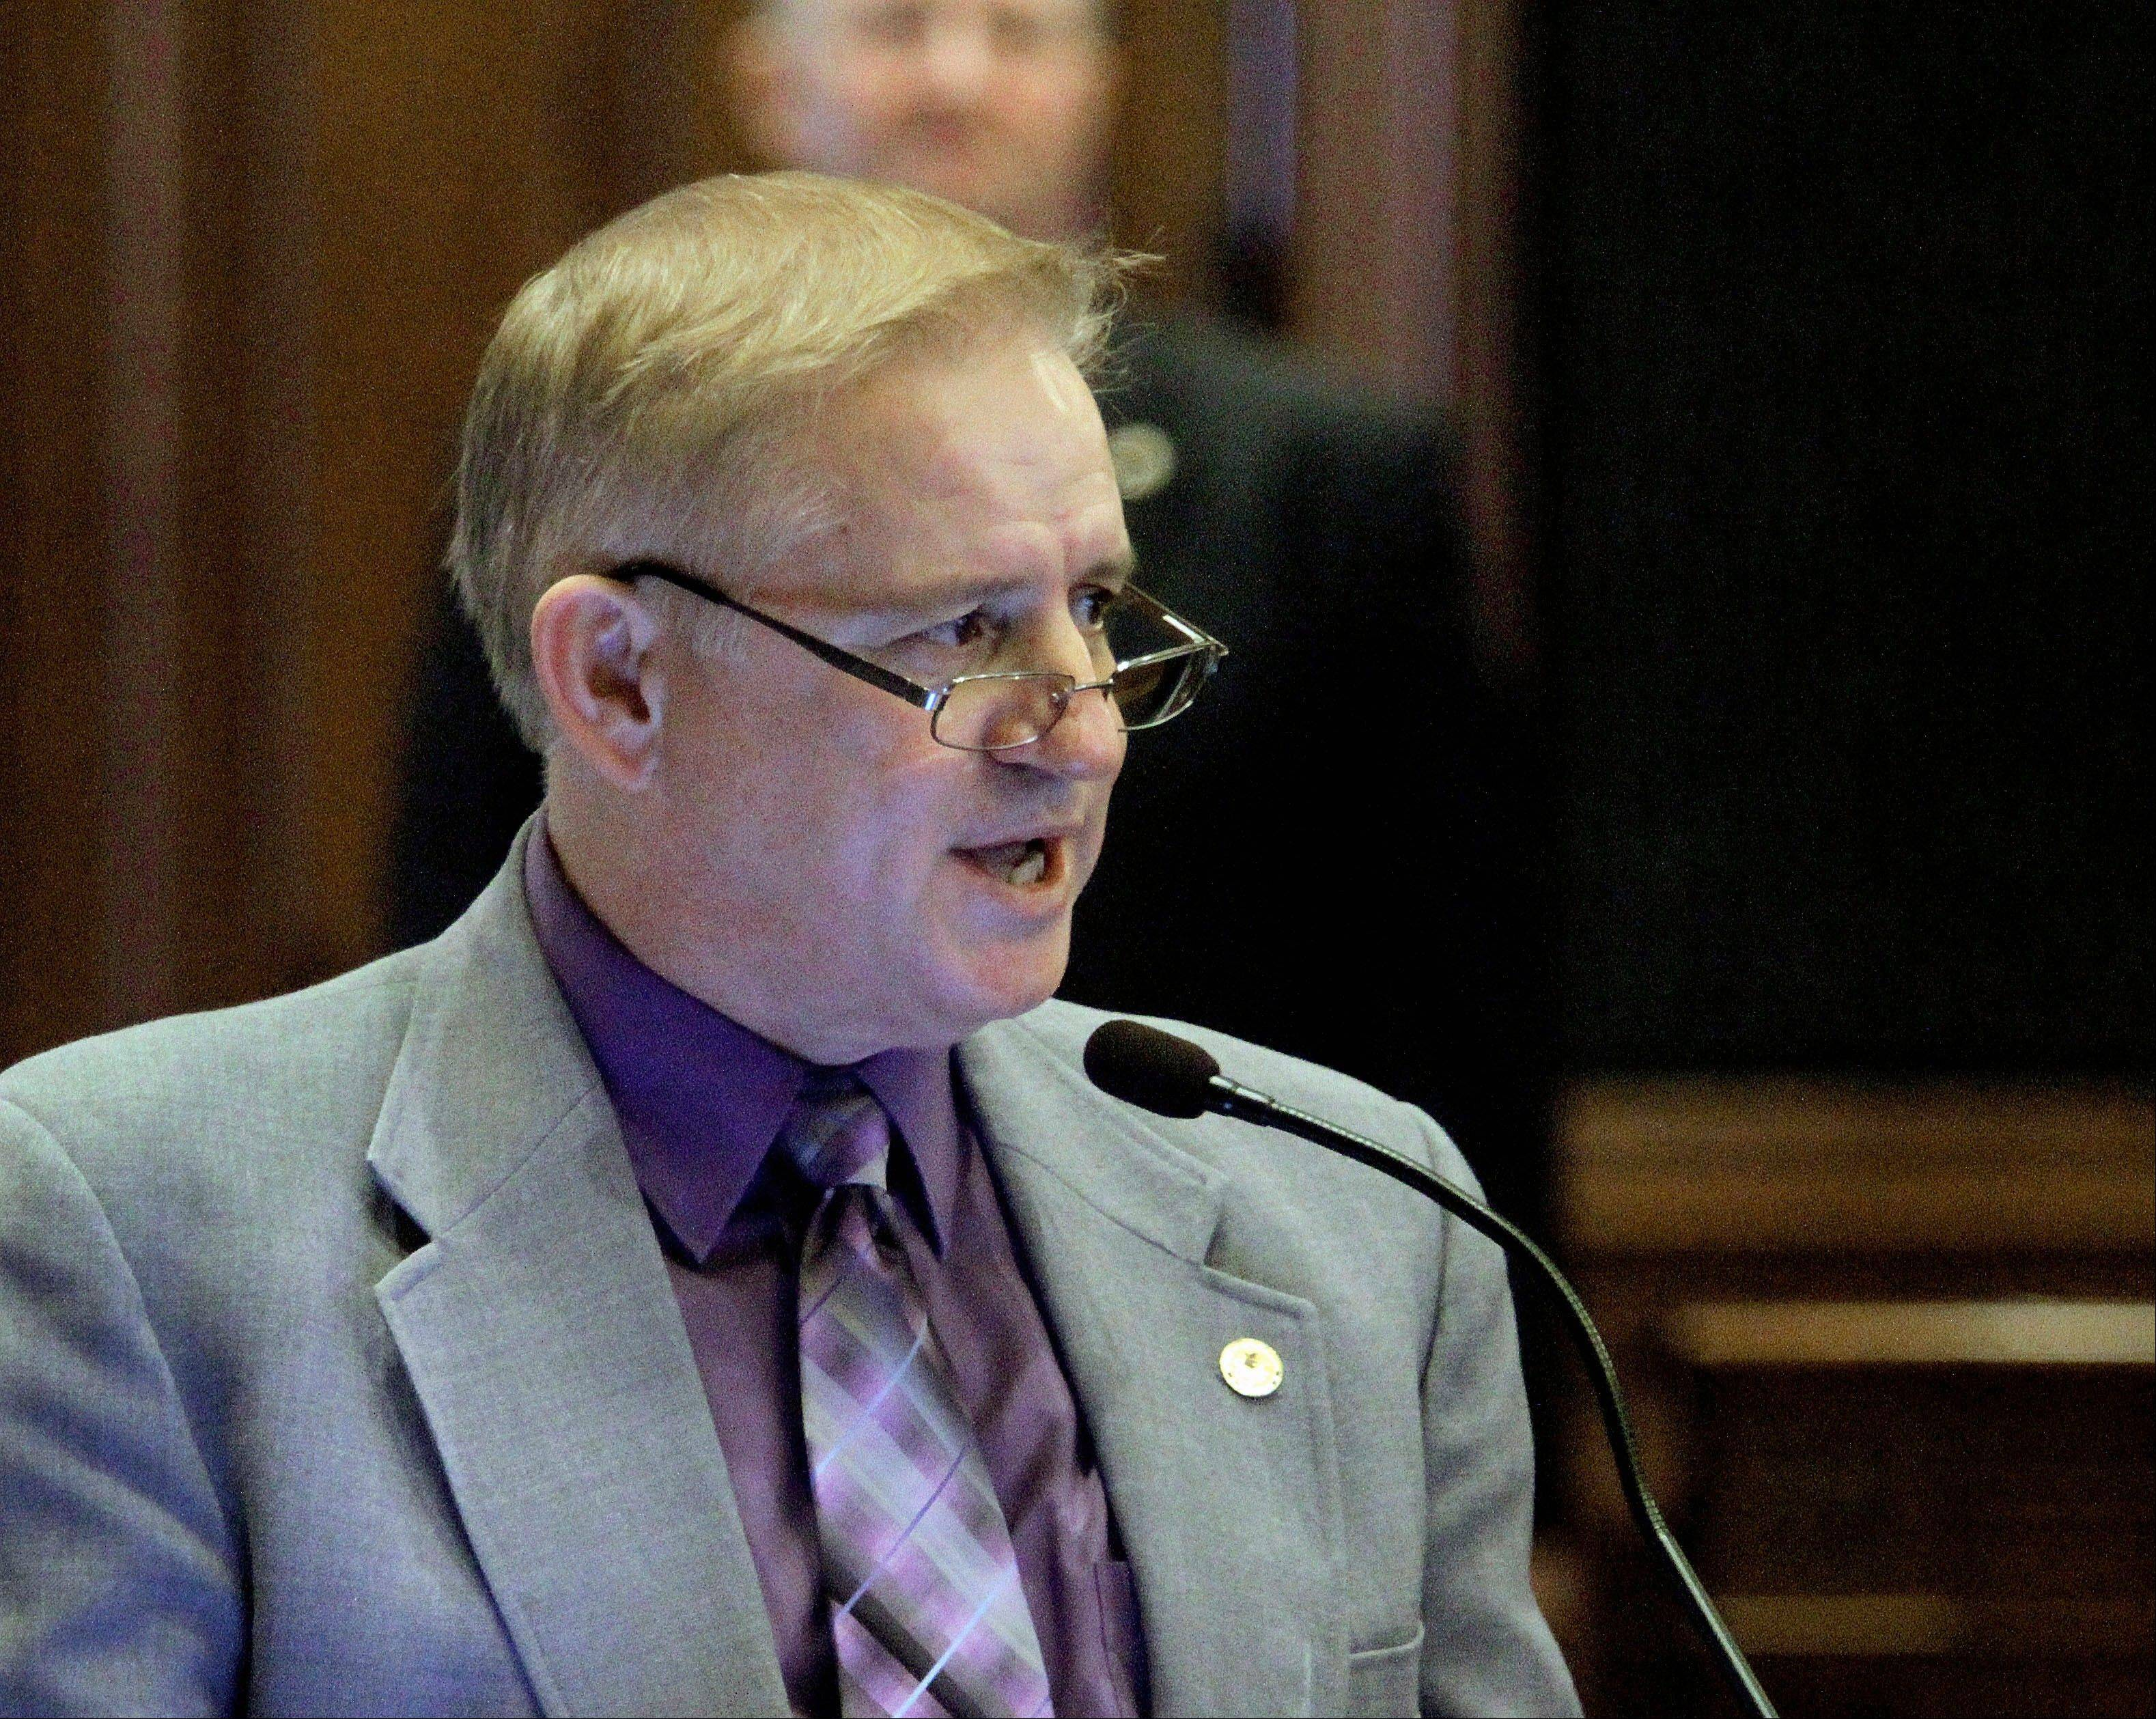 State Rep. Roger Eddy, a Hutsonville Republican, says that Illinois law gives regional school superintendents many responsibilities, such as background checks, building inspections and training bus drivers.